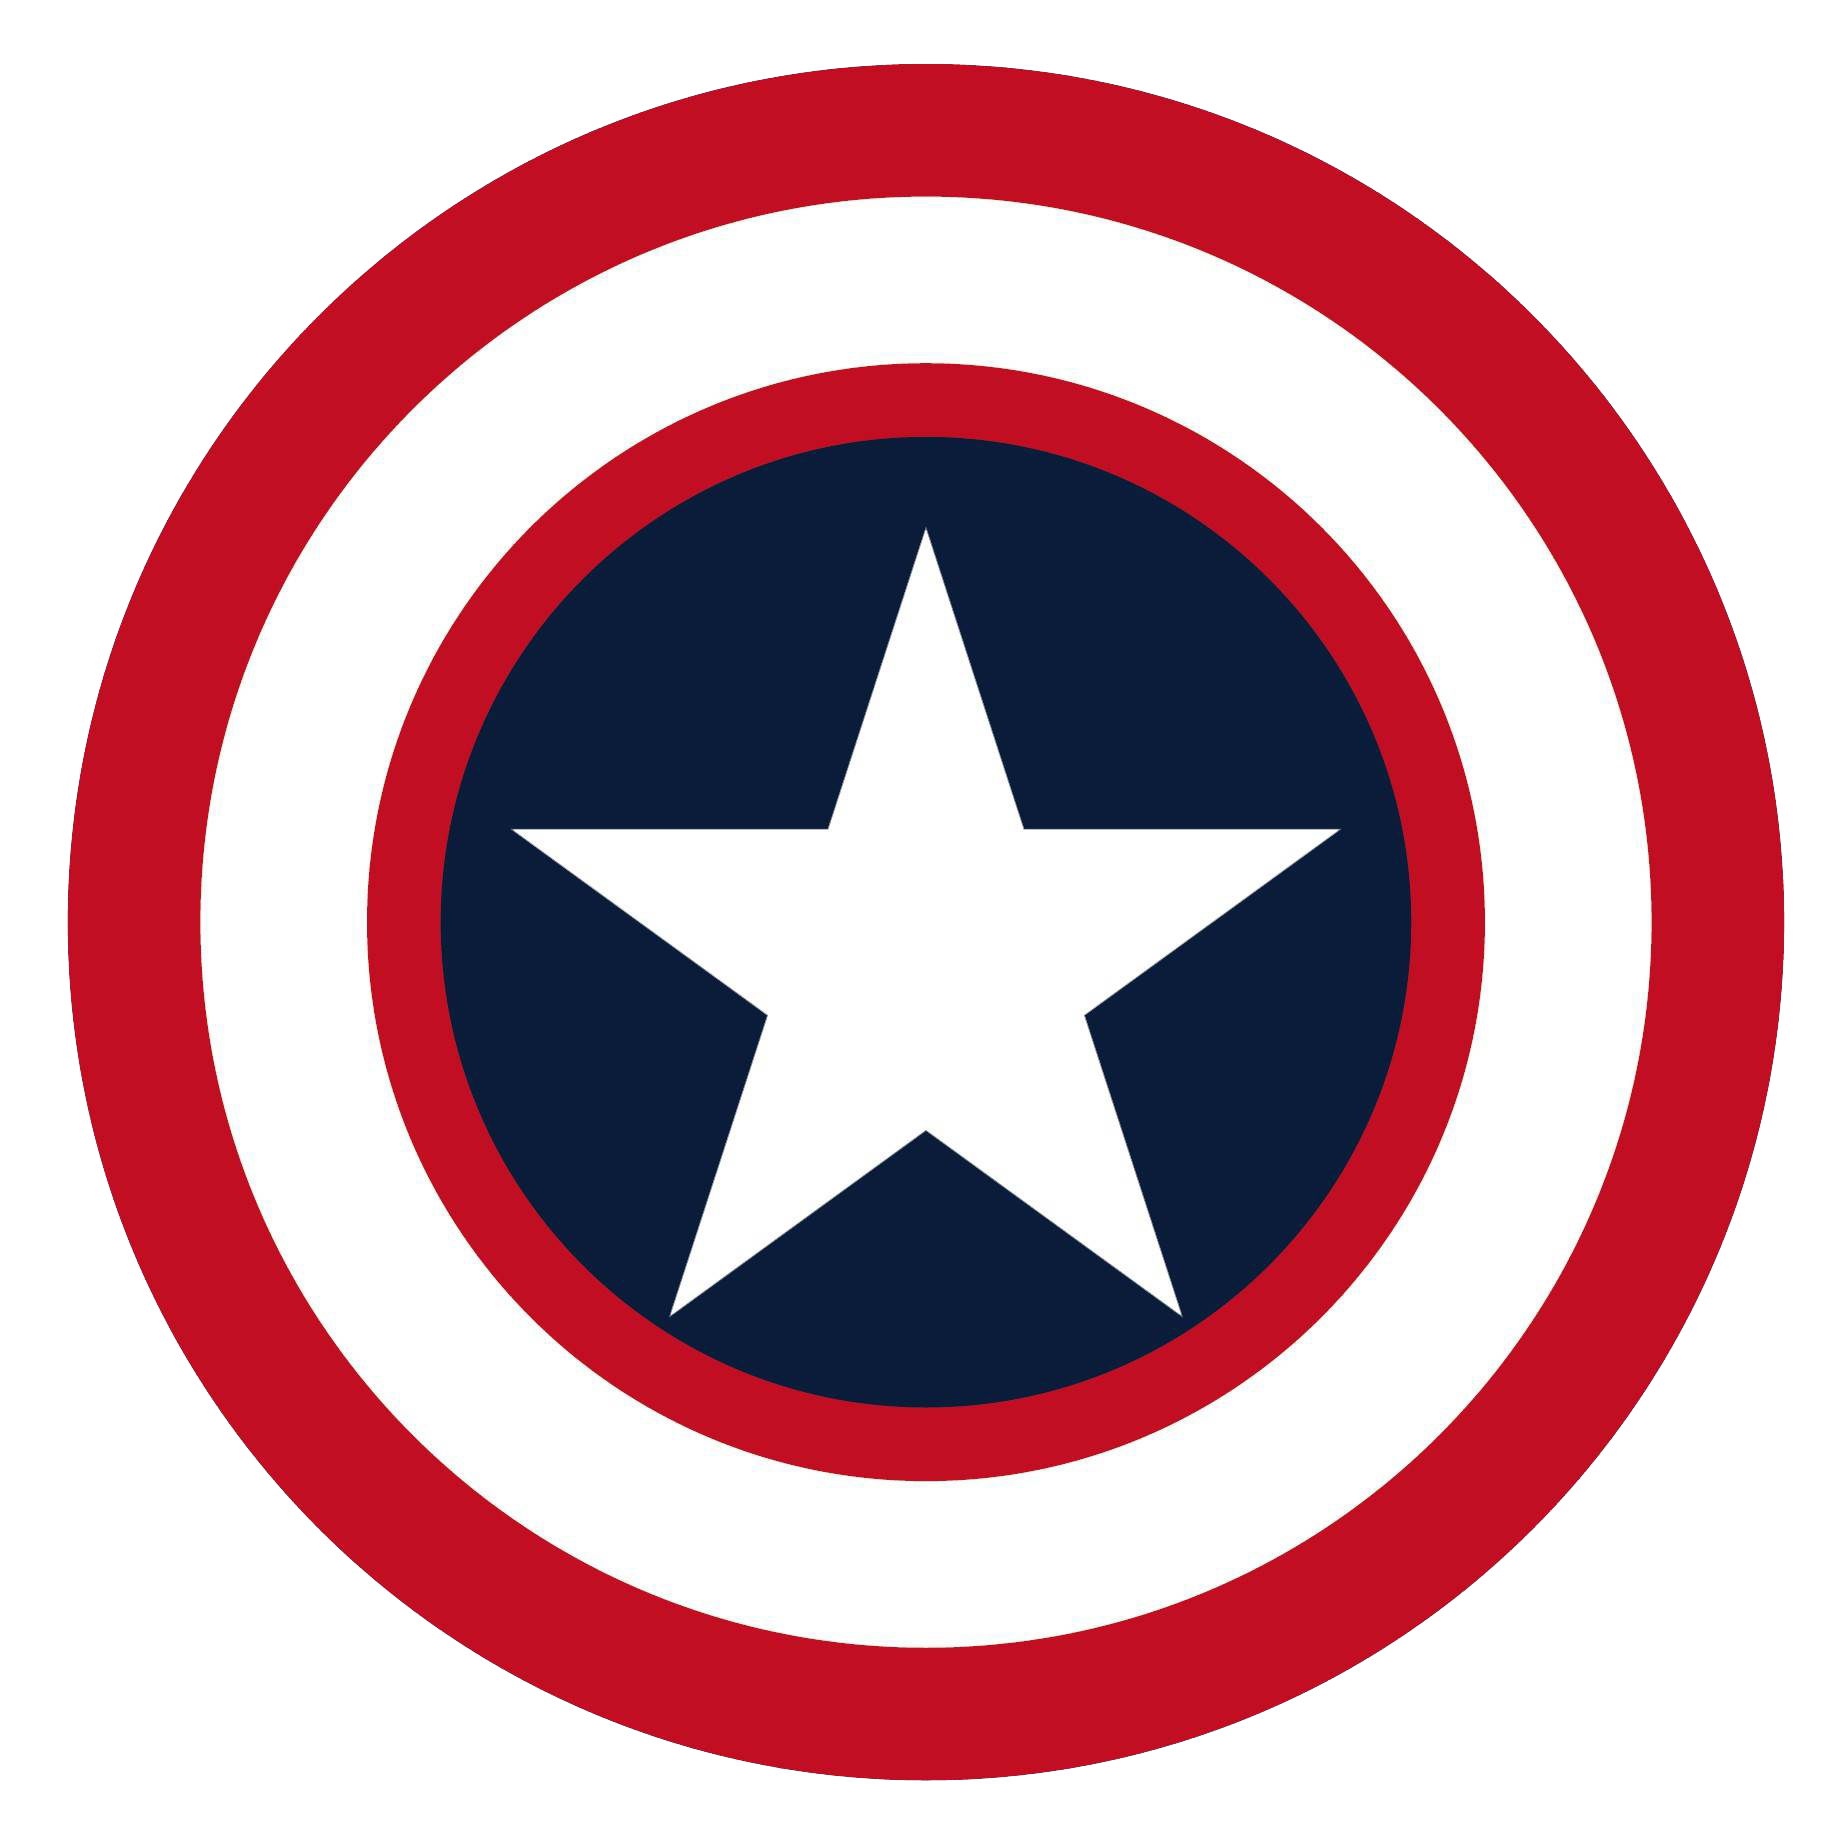 Captain marvel symbol png. Capit n am rica